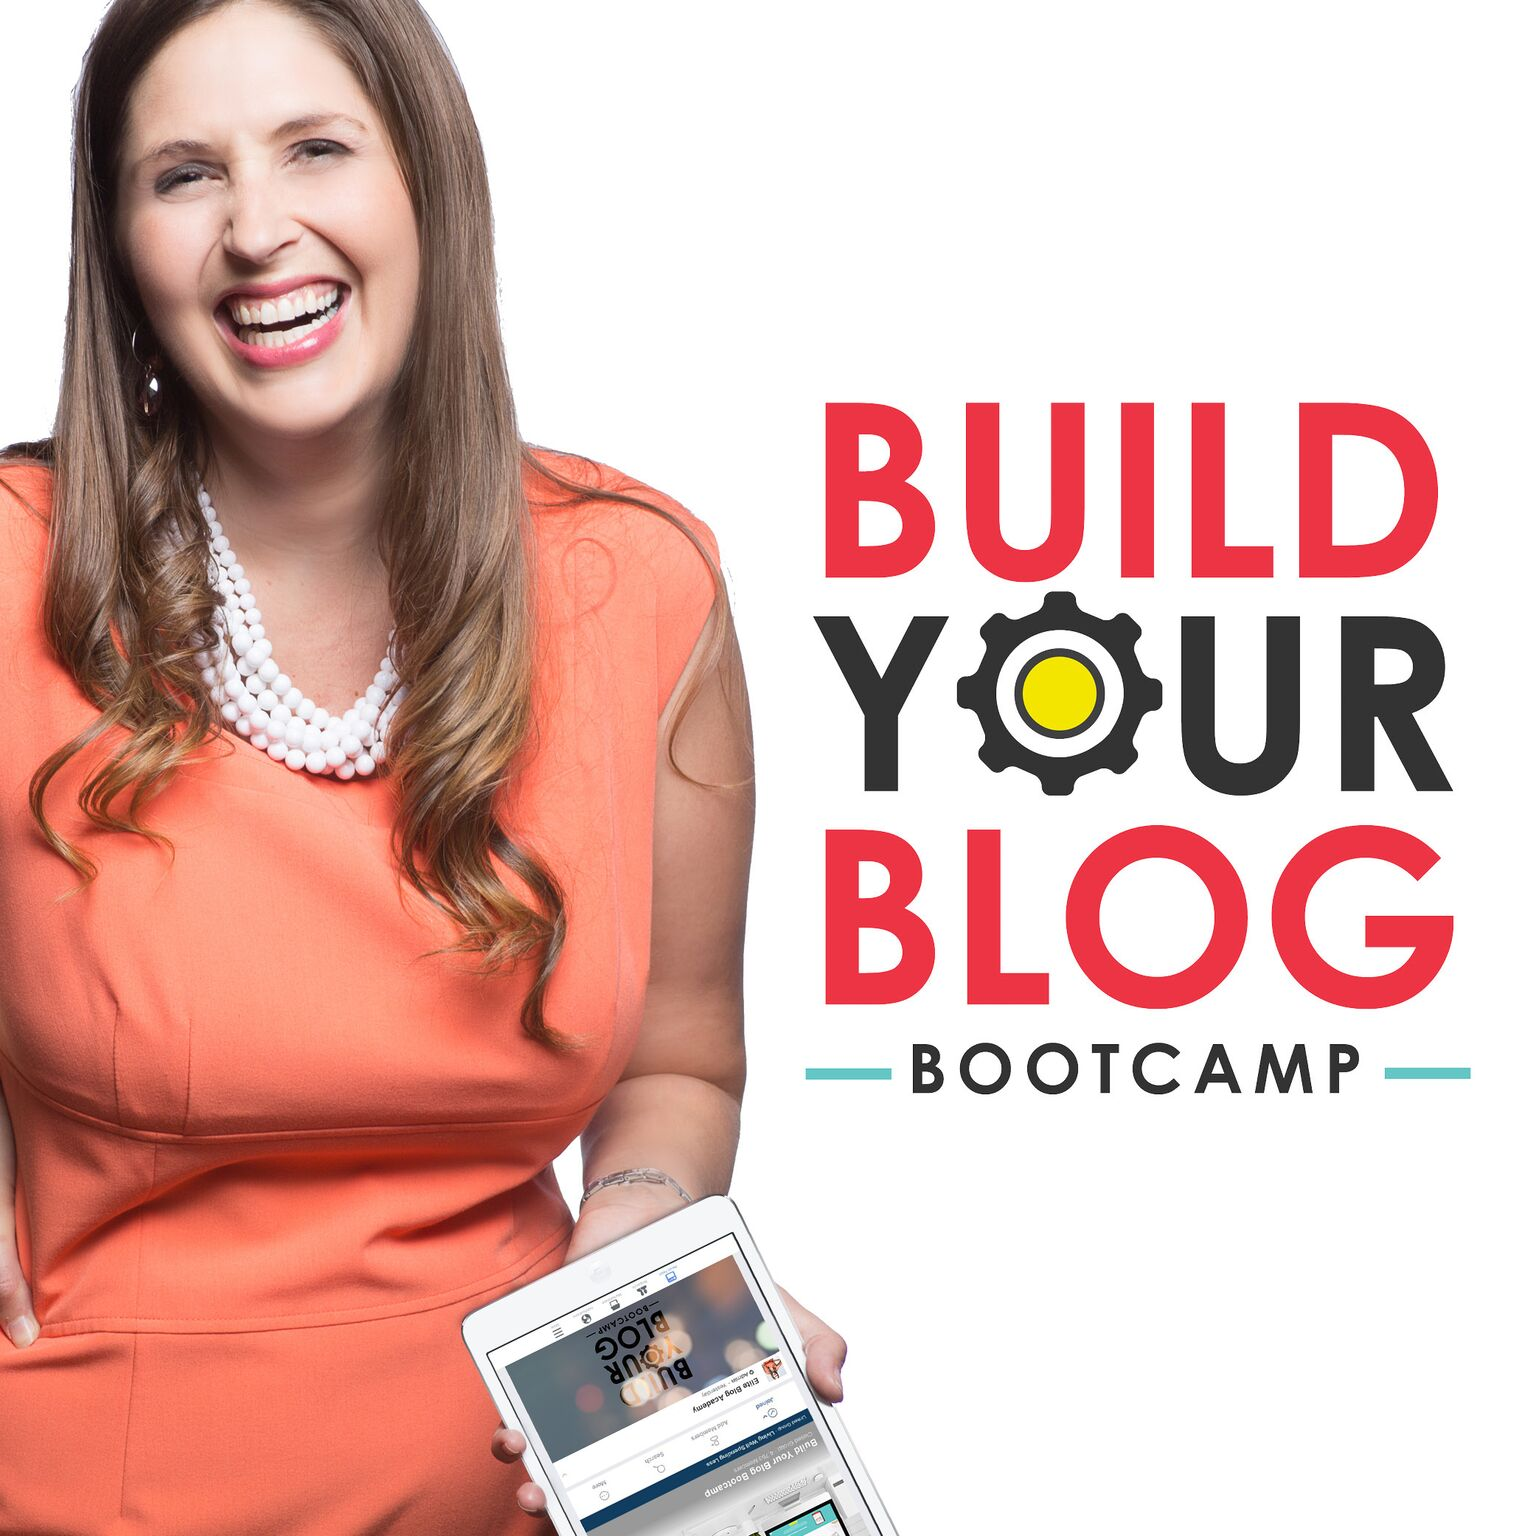 Build Your Blog | Blogging Tips | Blogging Bootcamp | Free Blogging Course